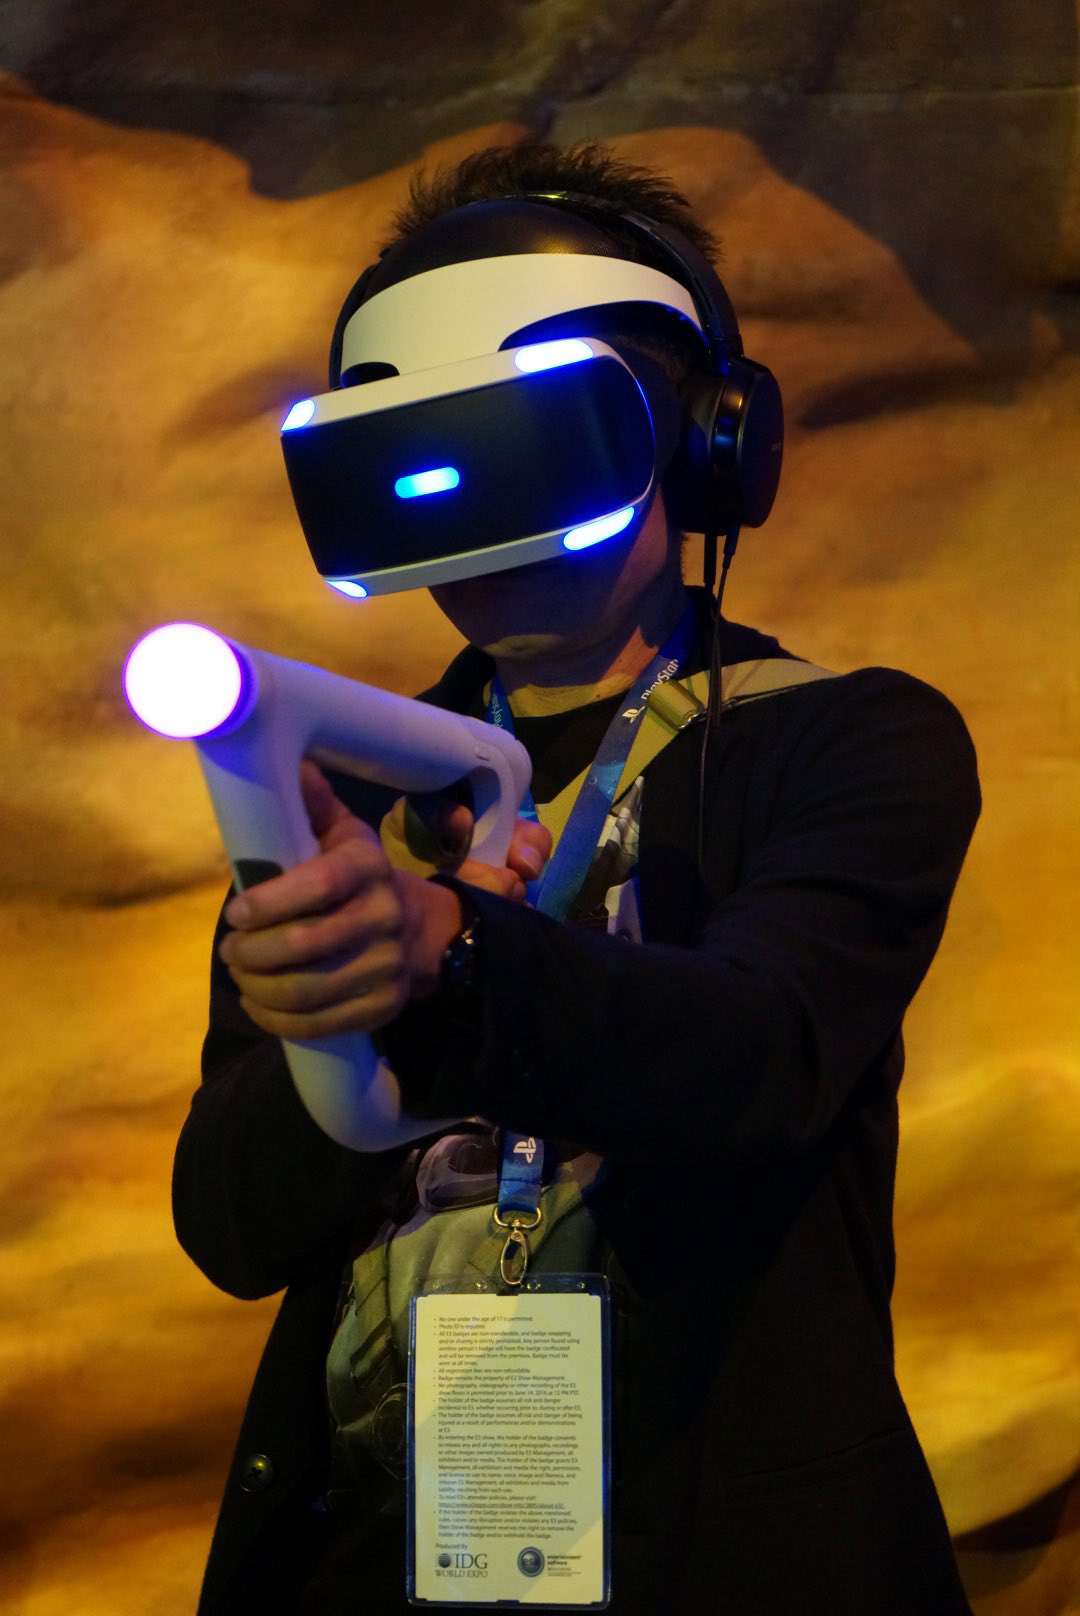 Kenji-Yano-playing-PlayStation-VR-at-E3-2016-2